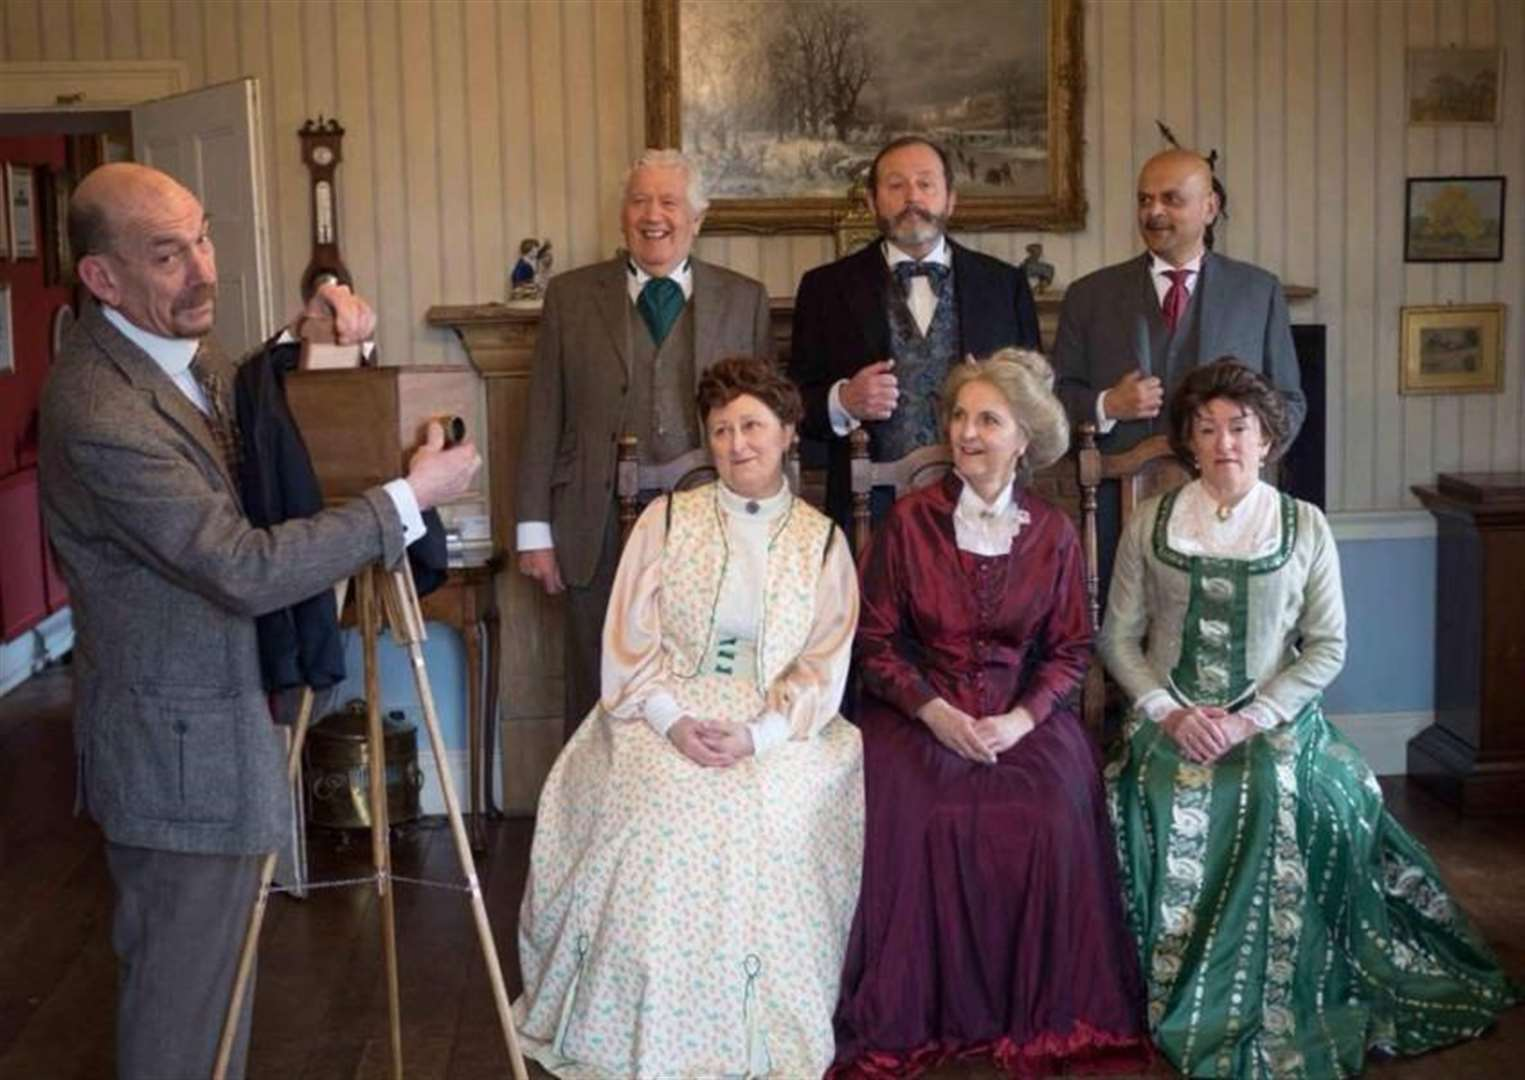 WHAT'S ON: Next Grantham amateur dramatic play will satirise middle-class pomposity